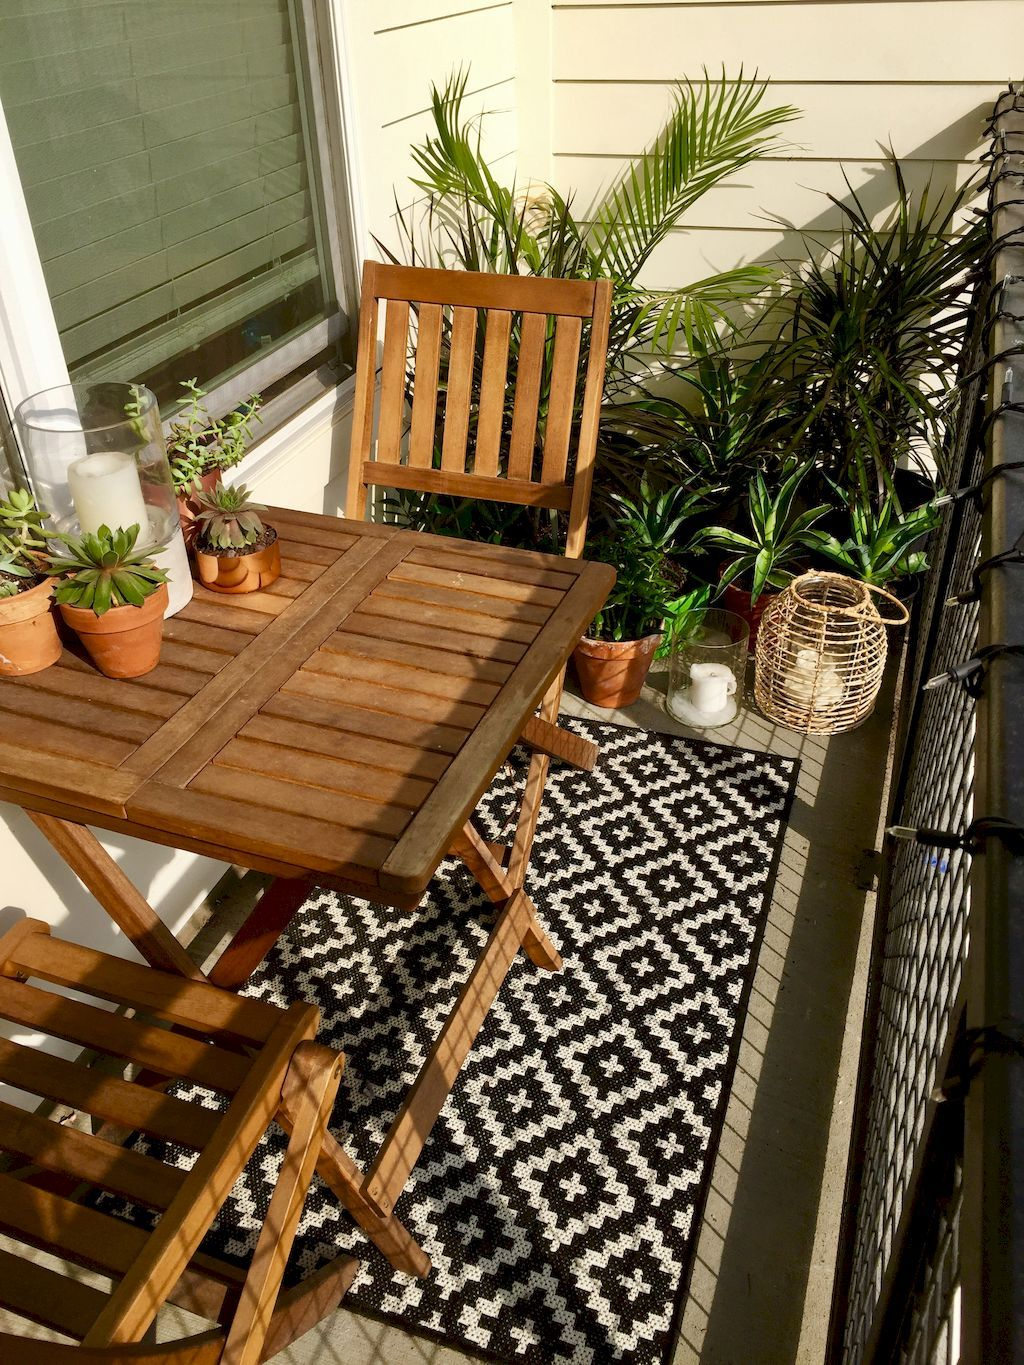 60 affordable cozy apartment balcony decorating ideas | apartment balcony garden, small balcony